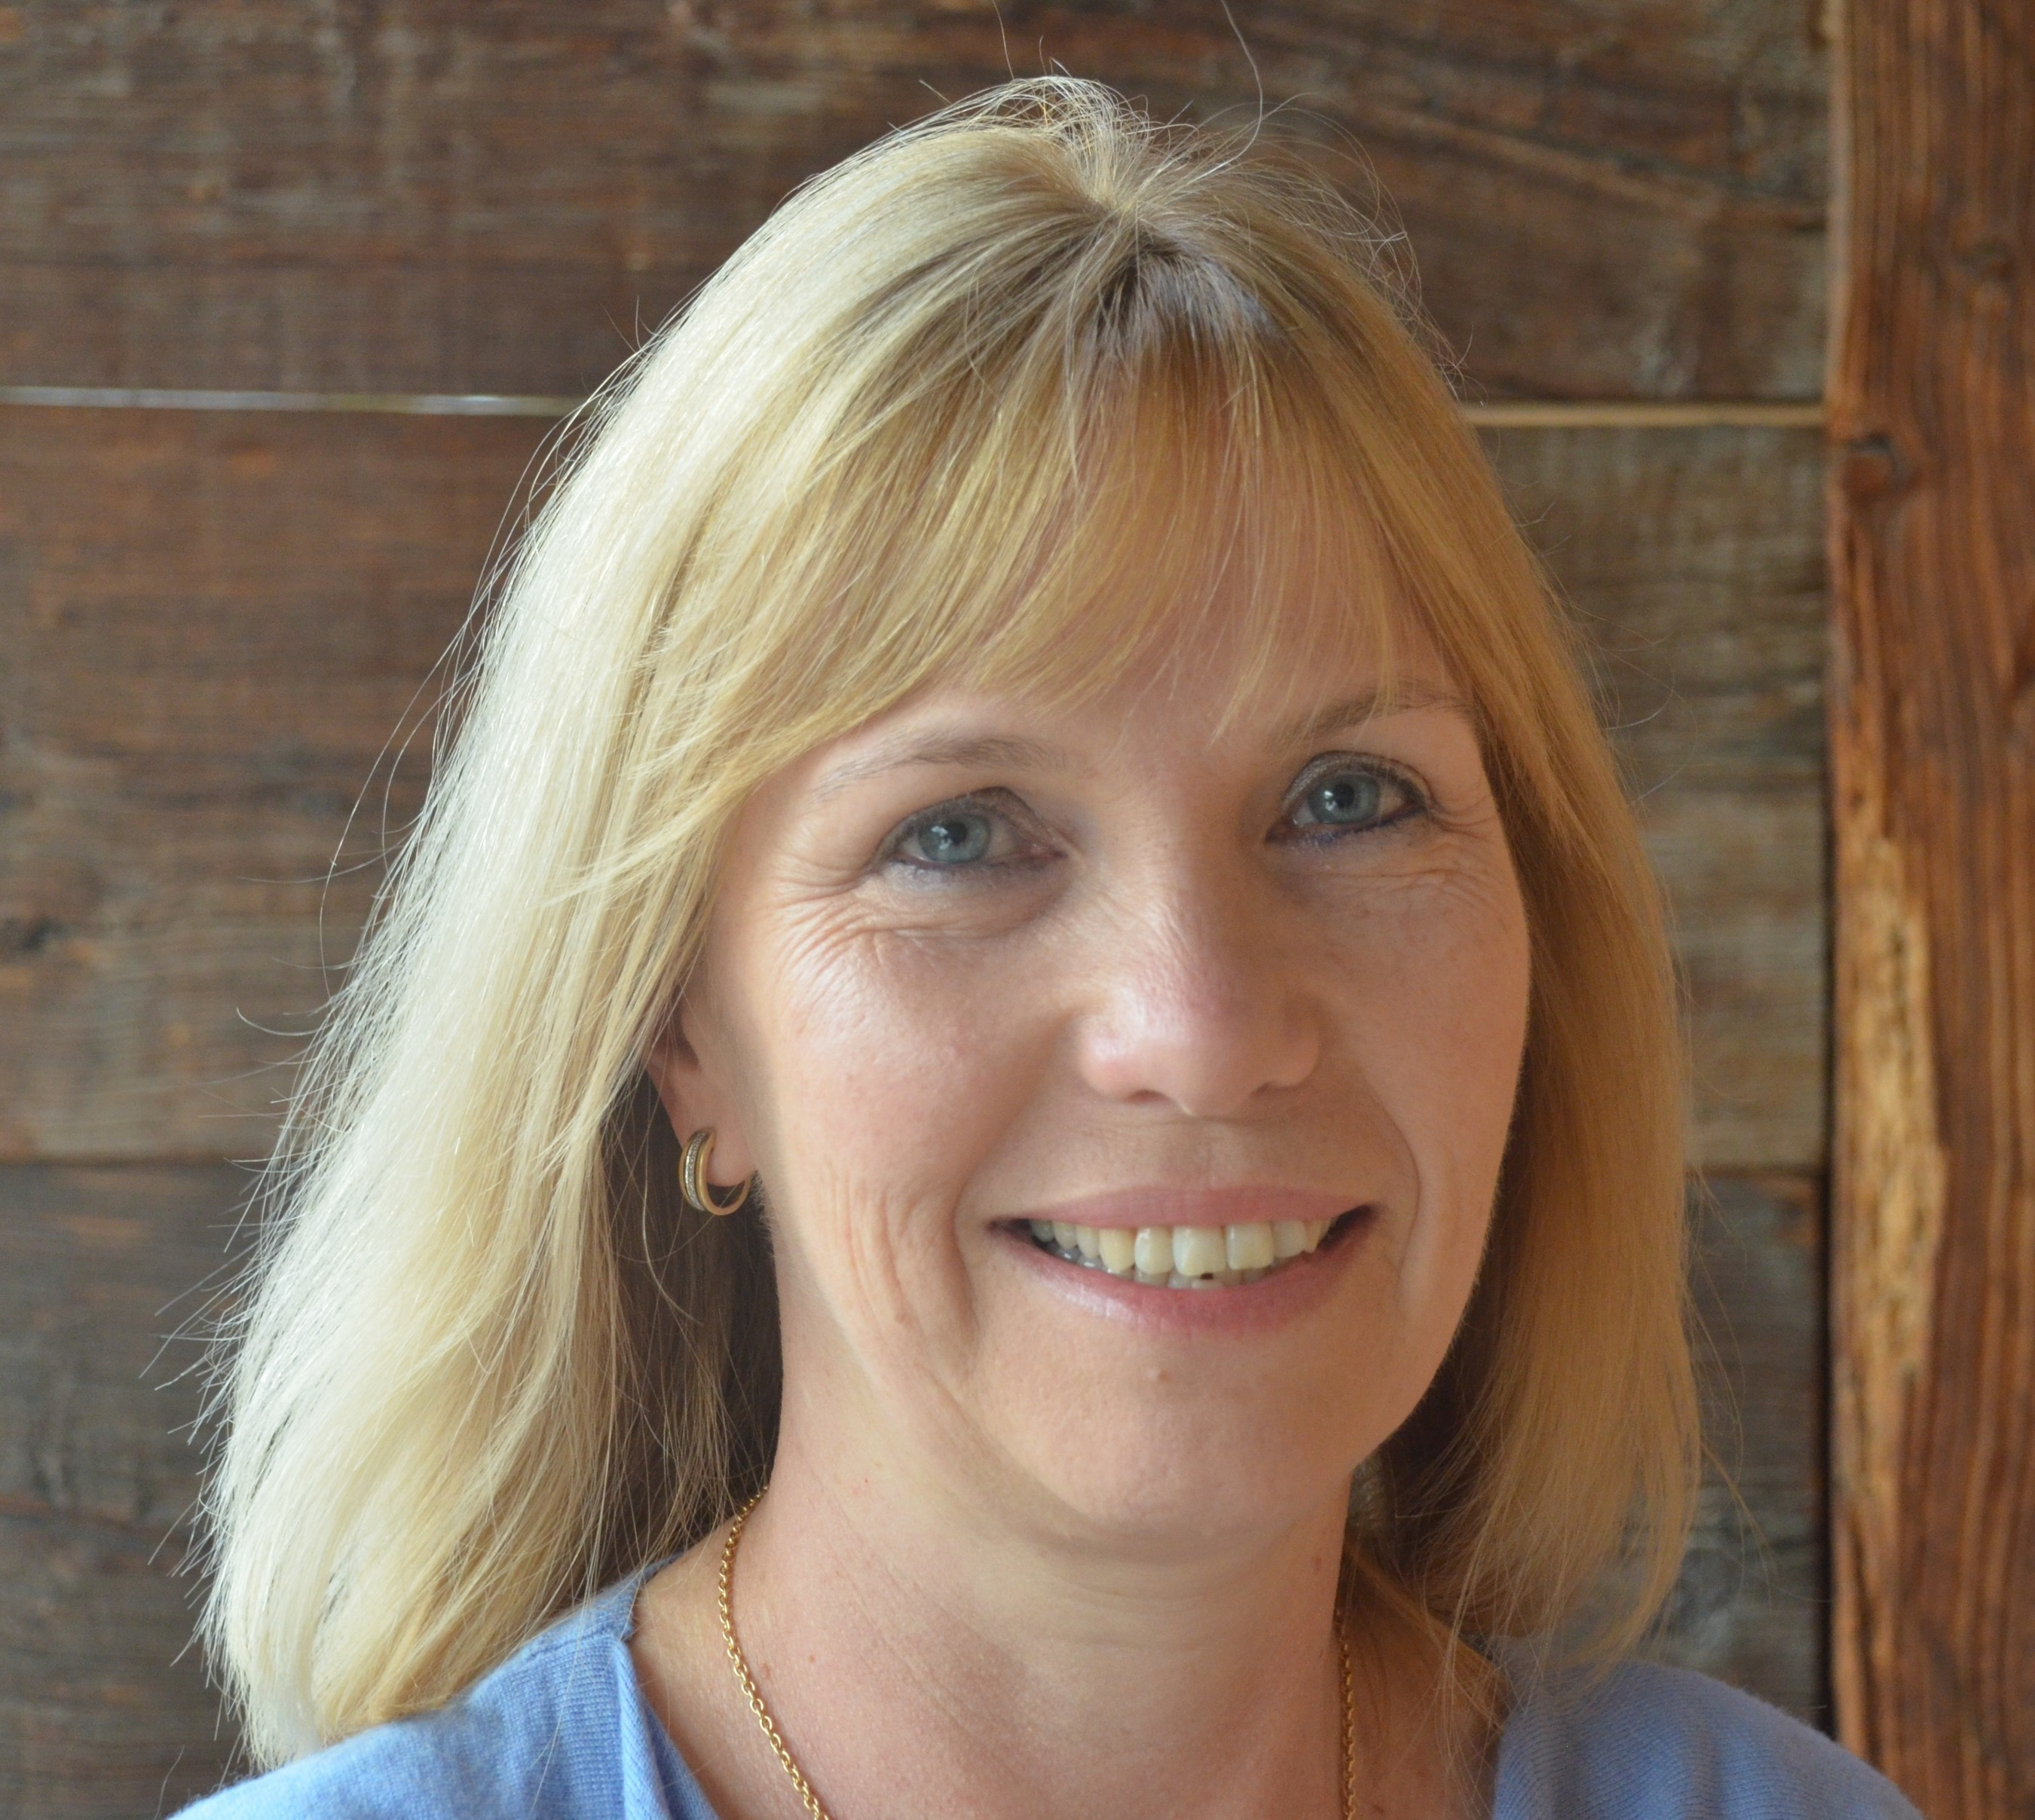 Georgina Hurst, Regional Sales Manager, EMEA - A multilingual sales leader with 22 years of experience in building and accelerating sales across EMEA, Georgina joins APTARE in the U.K. to lead its business across Europe.